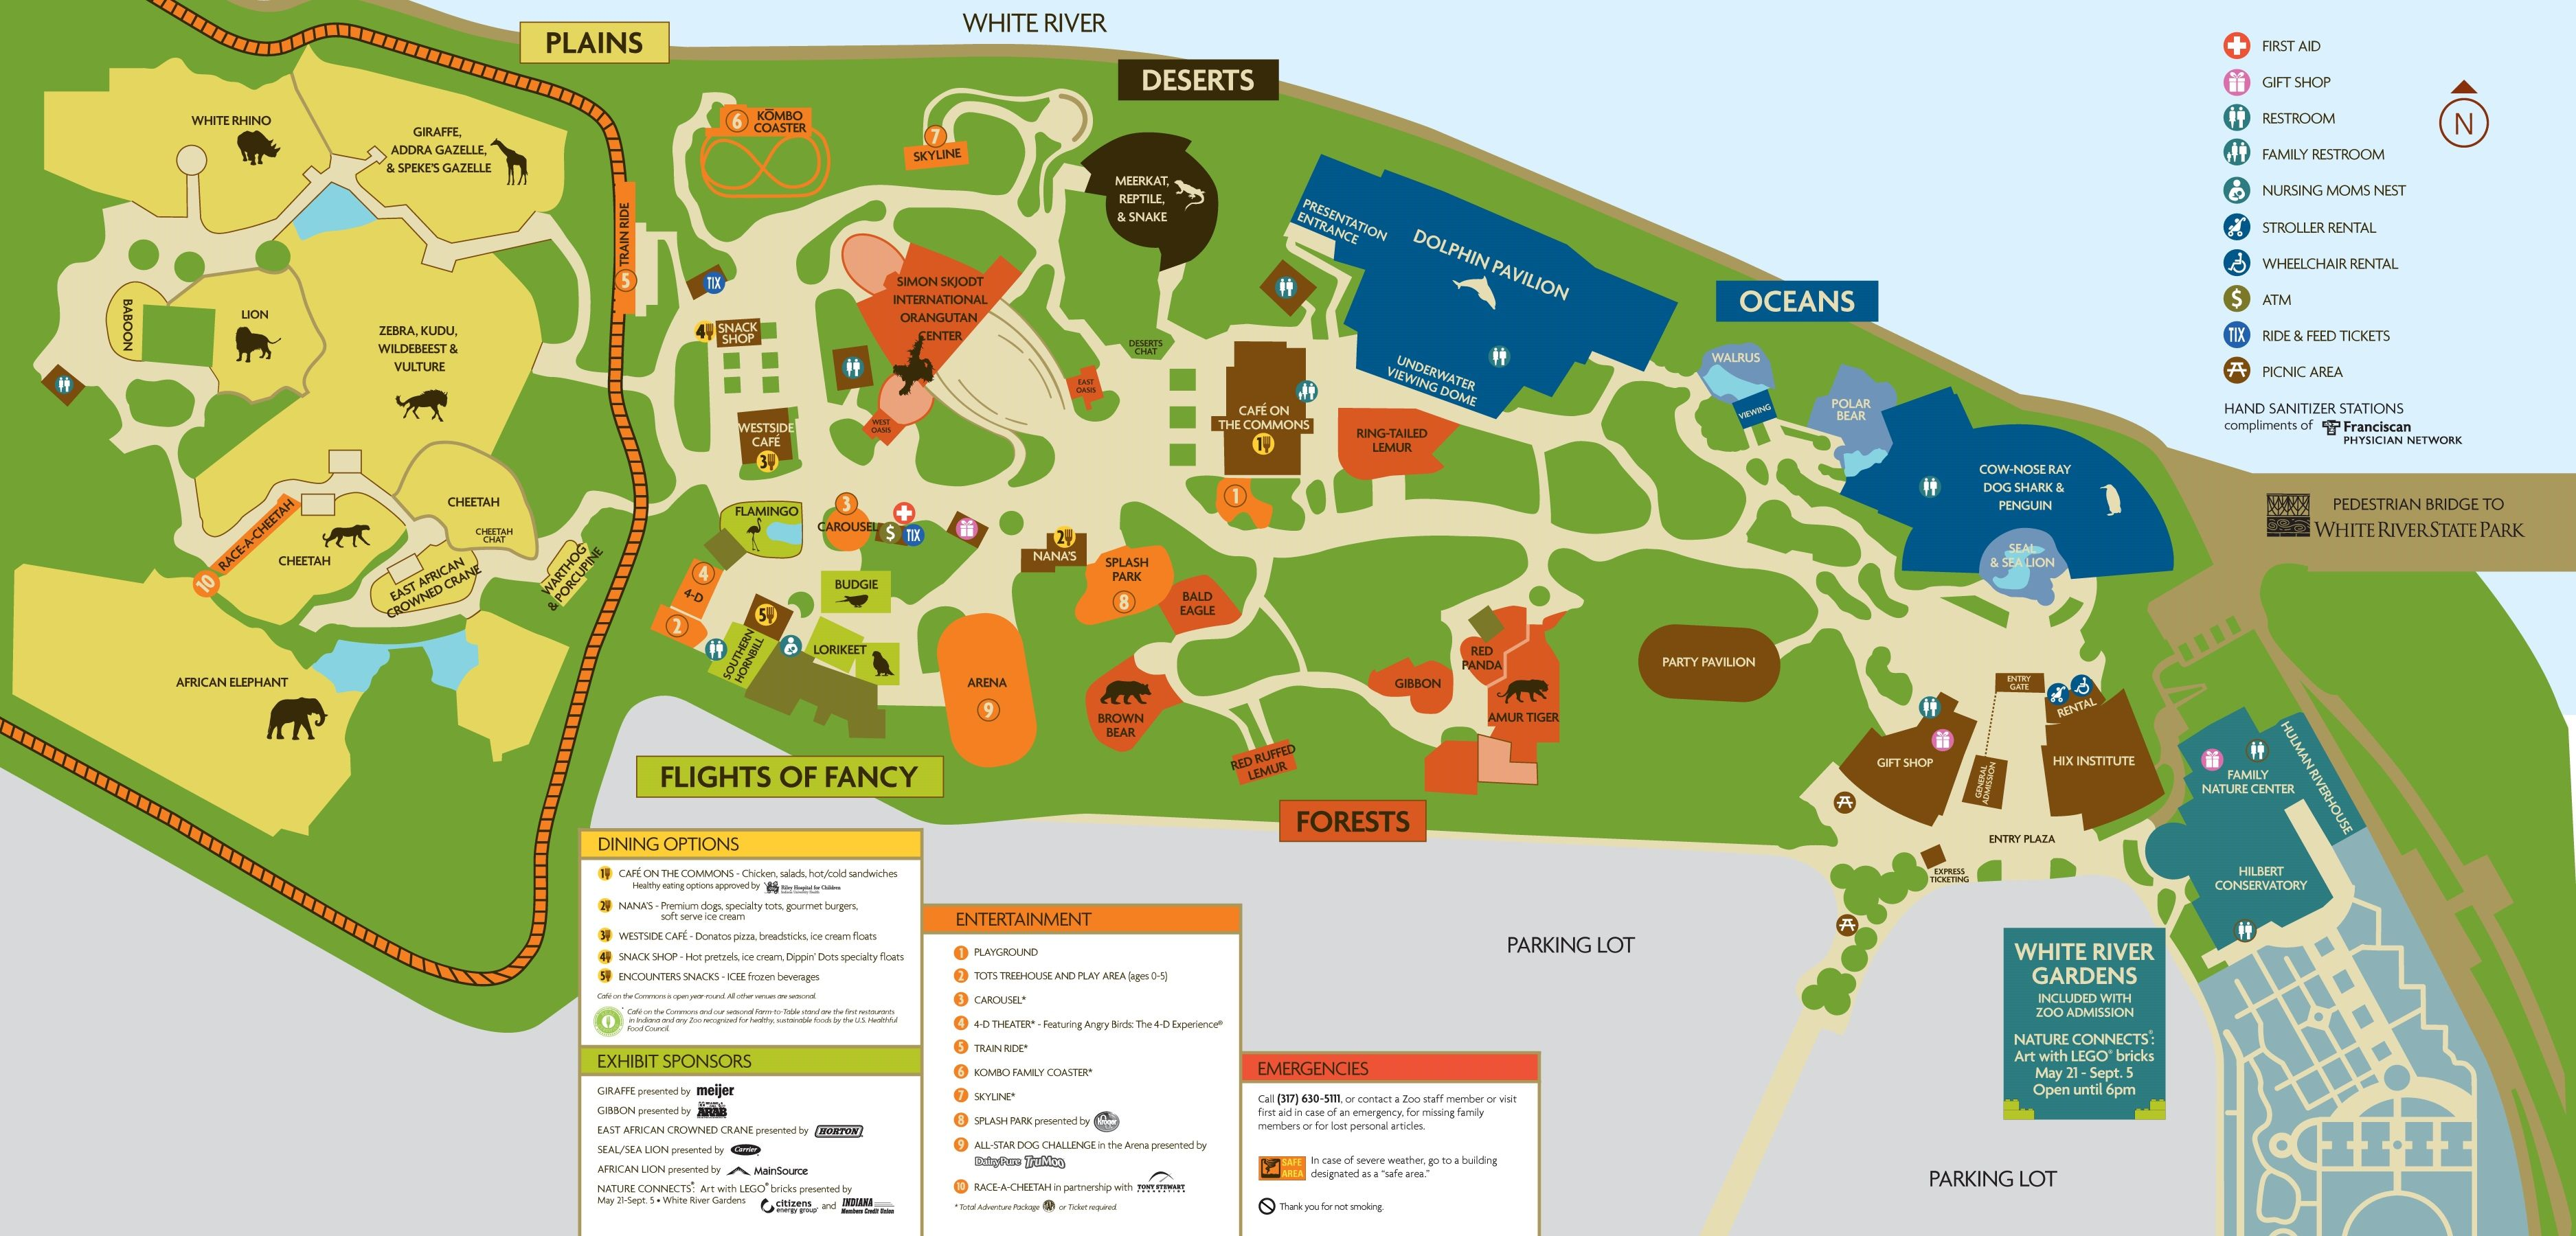 Indianapolis Zoo Map Image result for indianapolis zoo map | Zoo's and Animal Stuff  Indianapolis Zoo Map